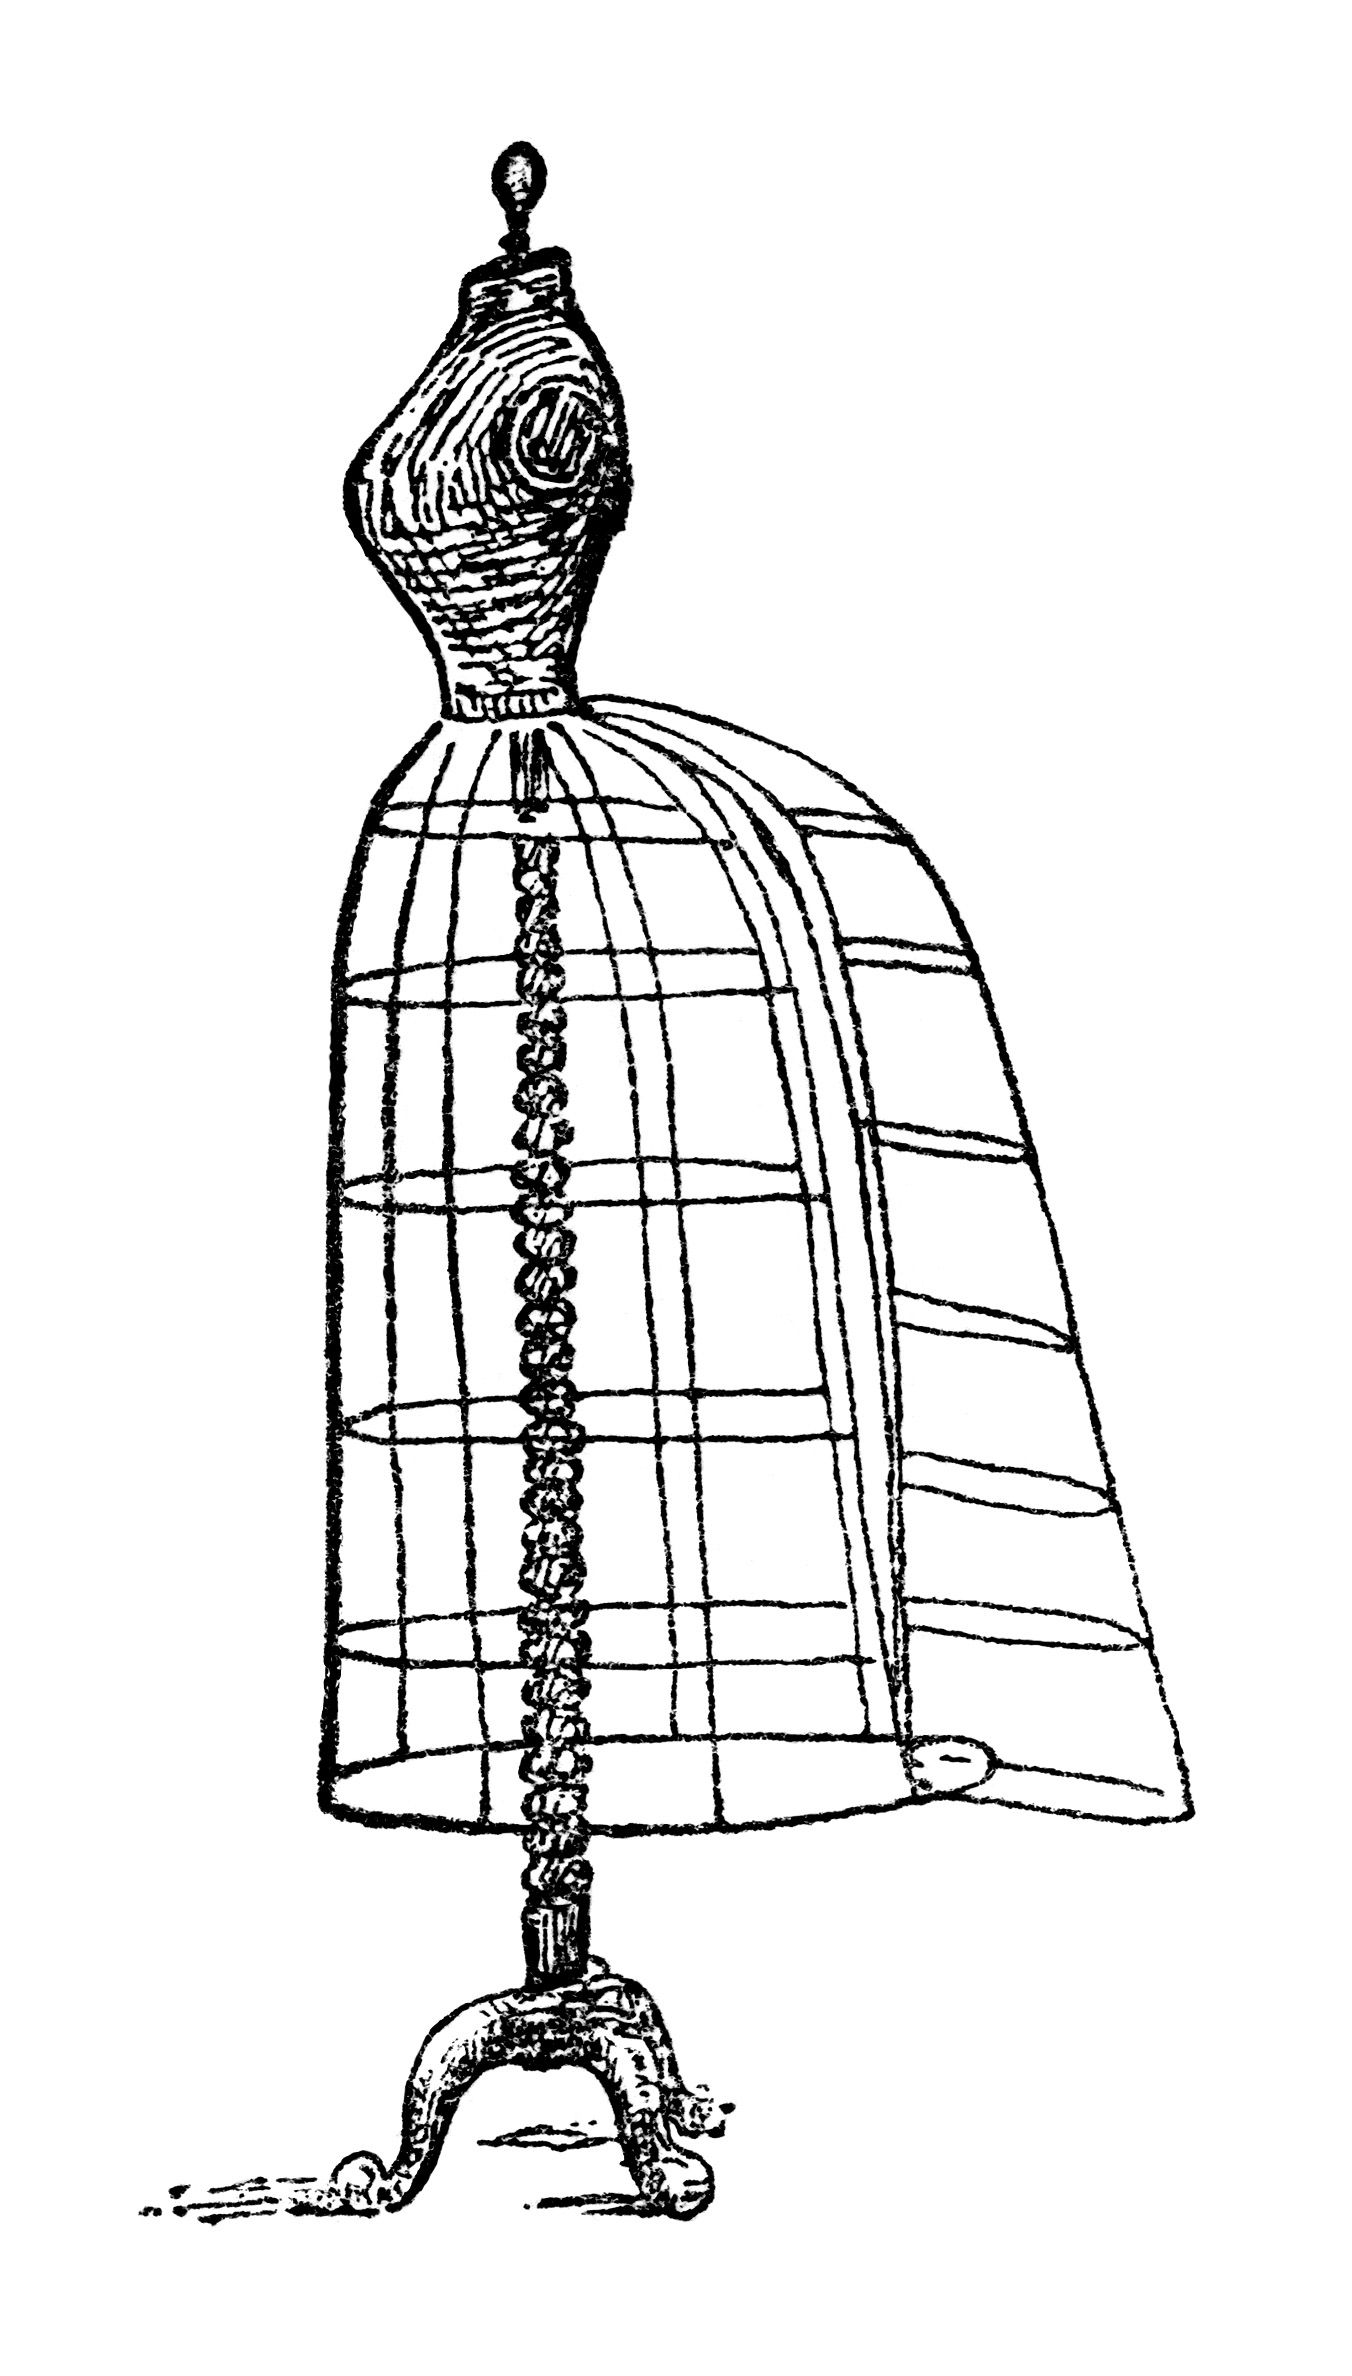 medium resolution of sewing machine clip art black and white sewing clip art black and white clipart wire dress form illustration